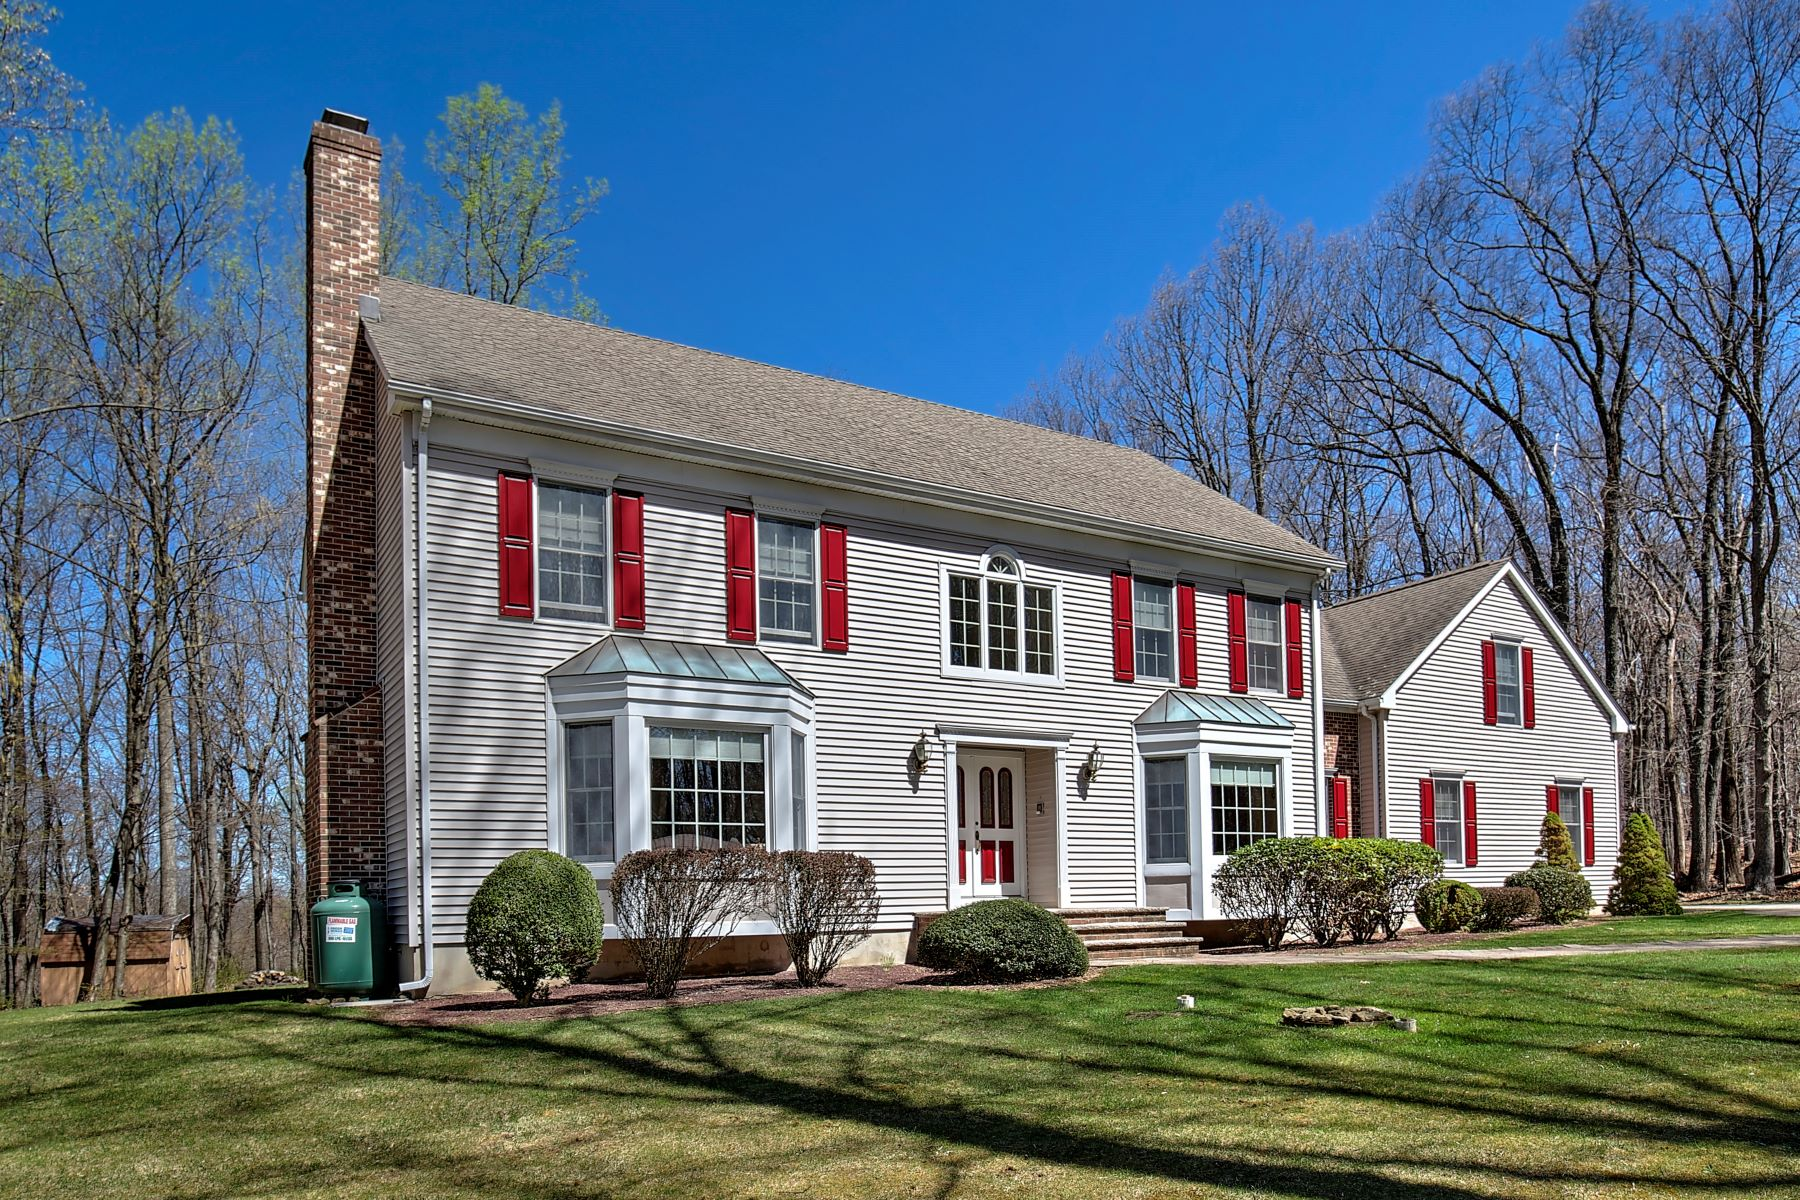 Single Family Home for Sale at Inviting Custom Colonial 31 Philhower Road Tewksbury Township, New Jersey, 08833 United States